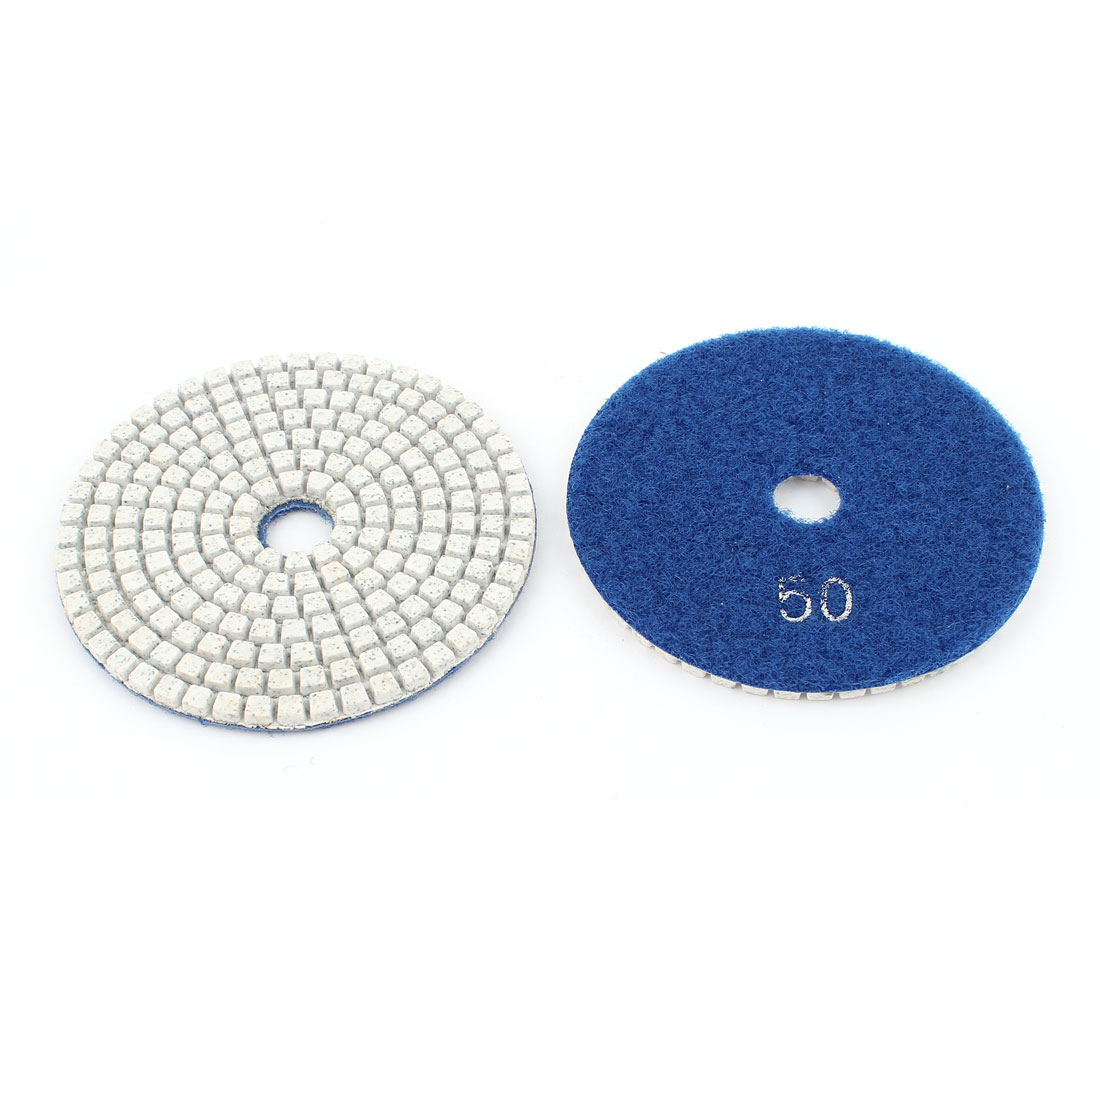 "2pcs 4"" 100mm Grits 50 Diamond Polishing Pads Blue for Wet Dry Granite Concrete Marble Glass Stone Sanding"